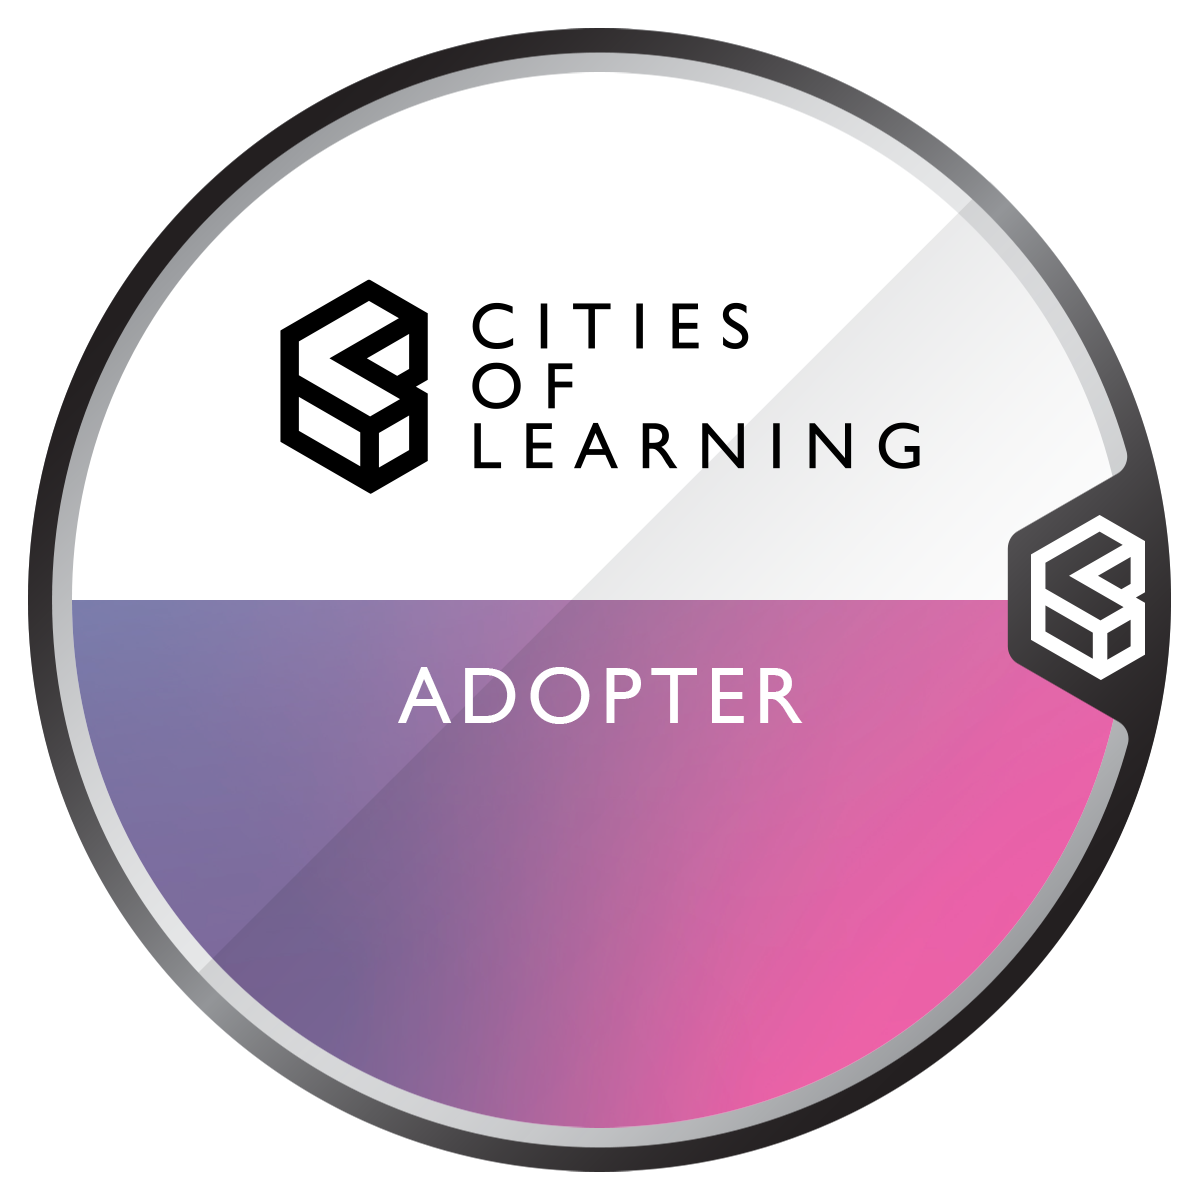 Cities of Learning Programme Adopter